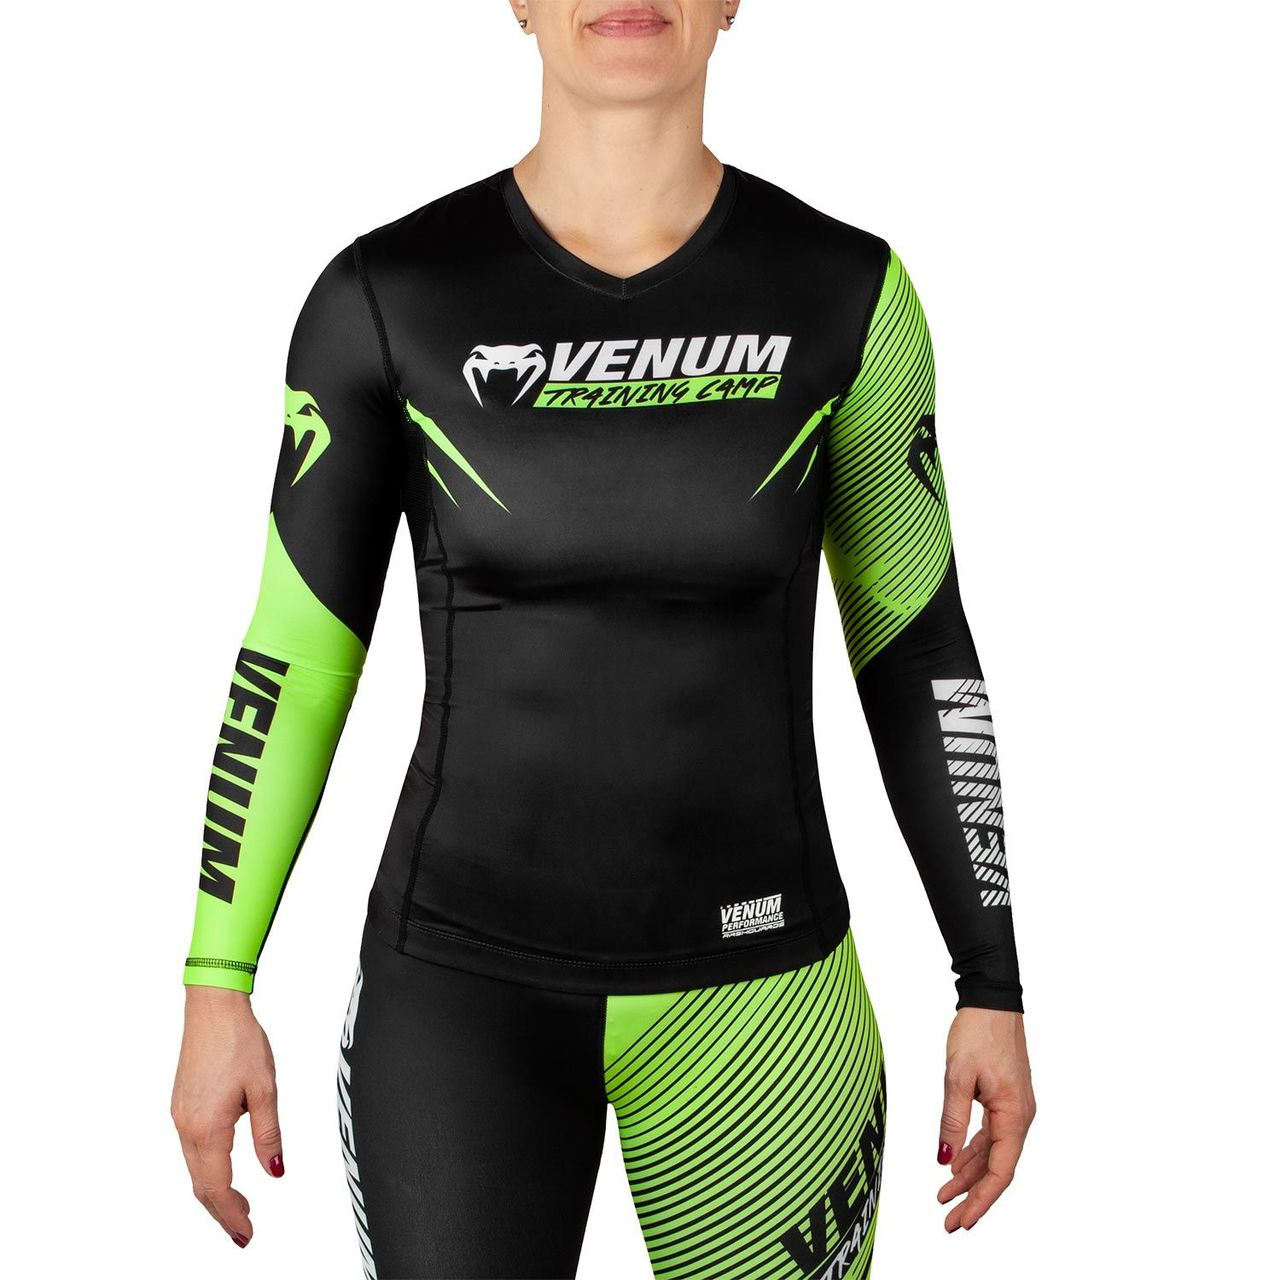 Venum Men/'s Technical 2.0 Short Sleeve Rash Guard MMA BJJ Black//Yellow